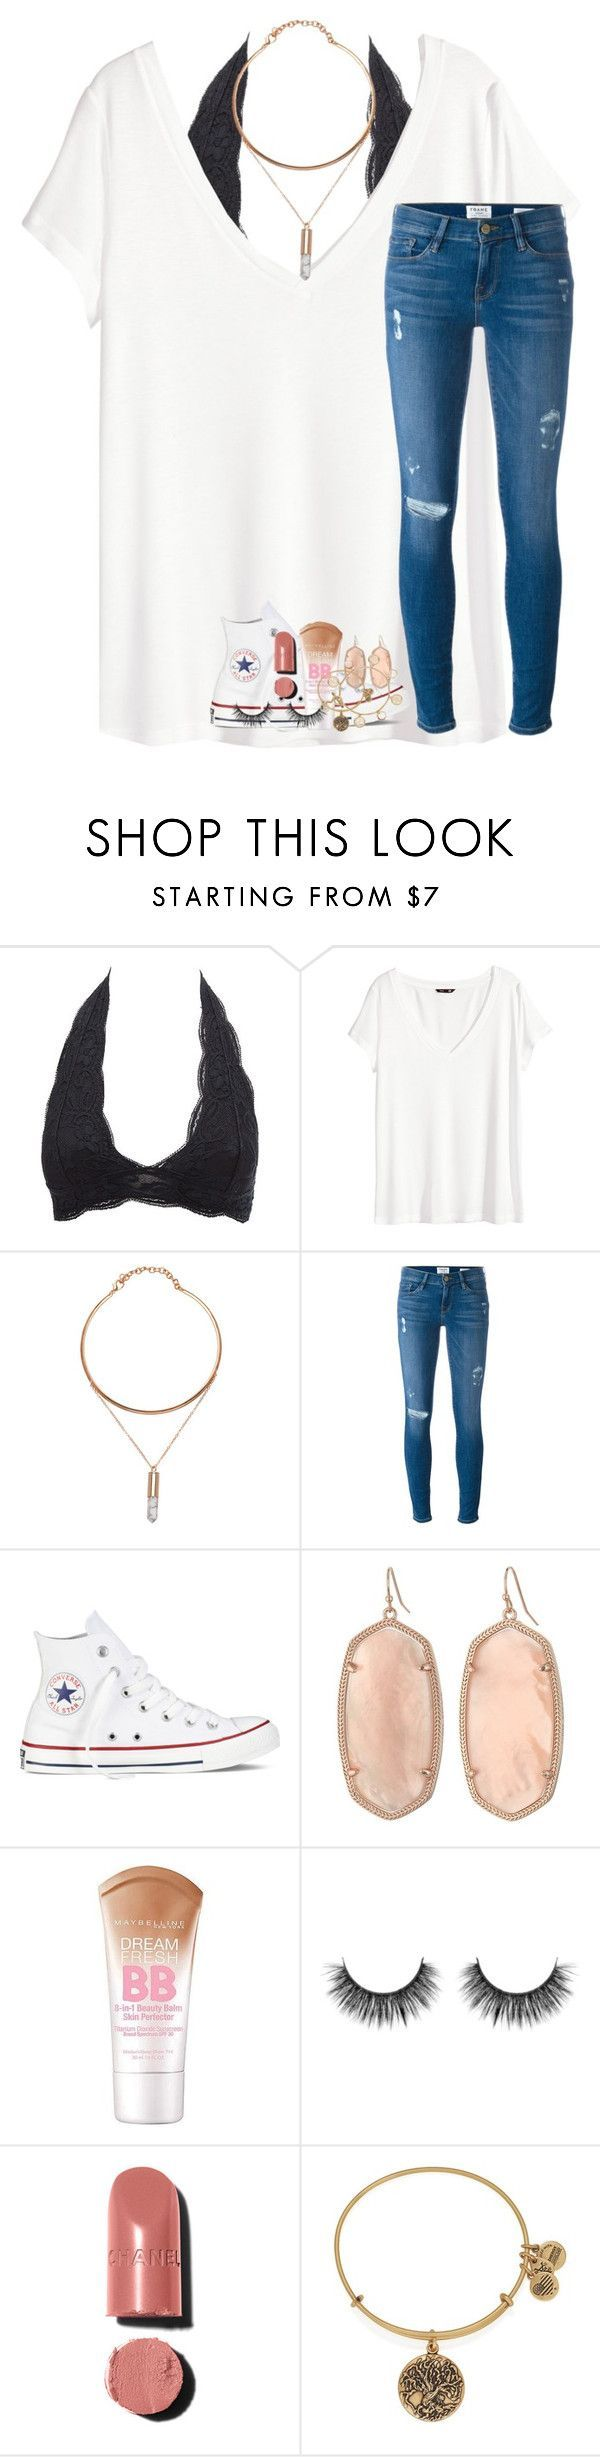 its called a hustle, sweetheart by lindsaygreys ❤ liked on Polyvore featuring Charlotte Russe, HM, Frame Denim, Converse, Kendra Scott, Maybelline, Chanel, Alex and Ani, Tory Burch and Lindsaysbest